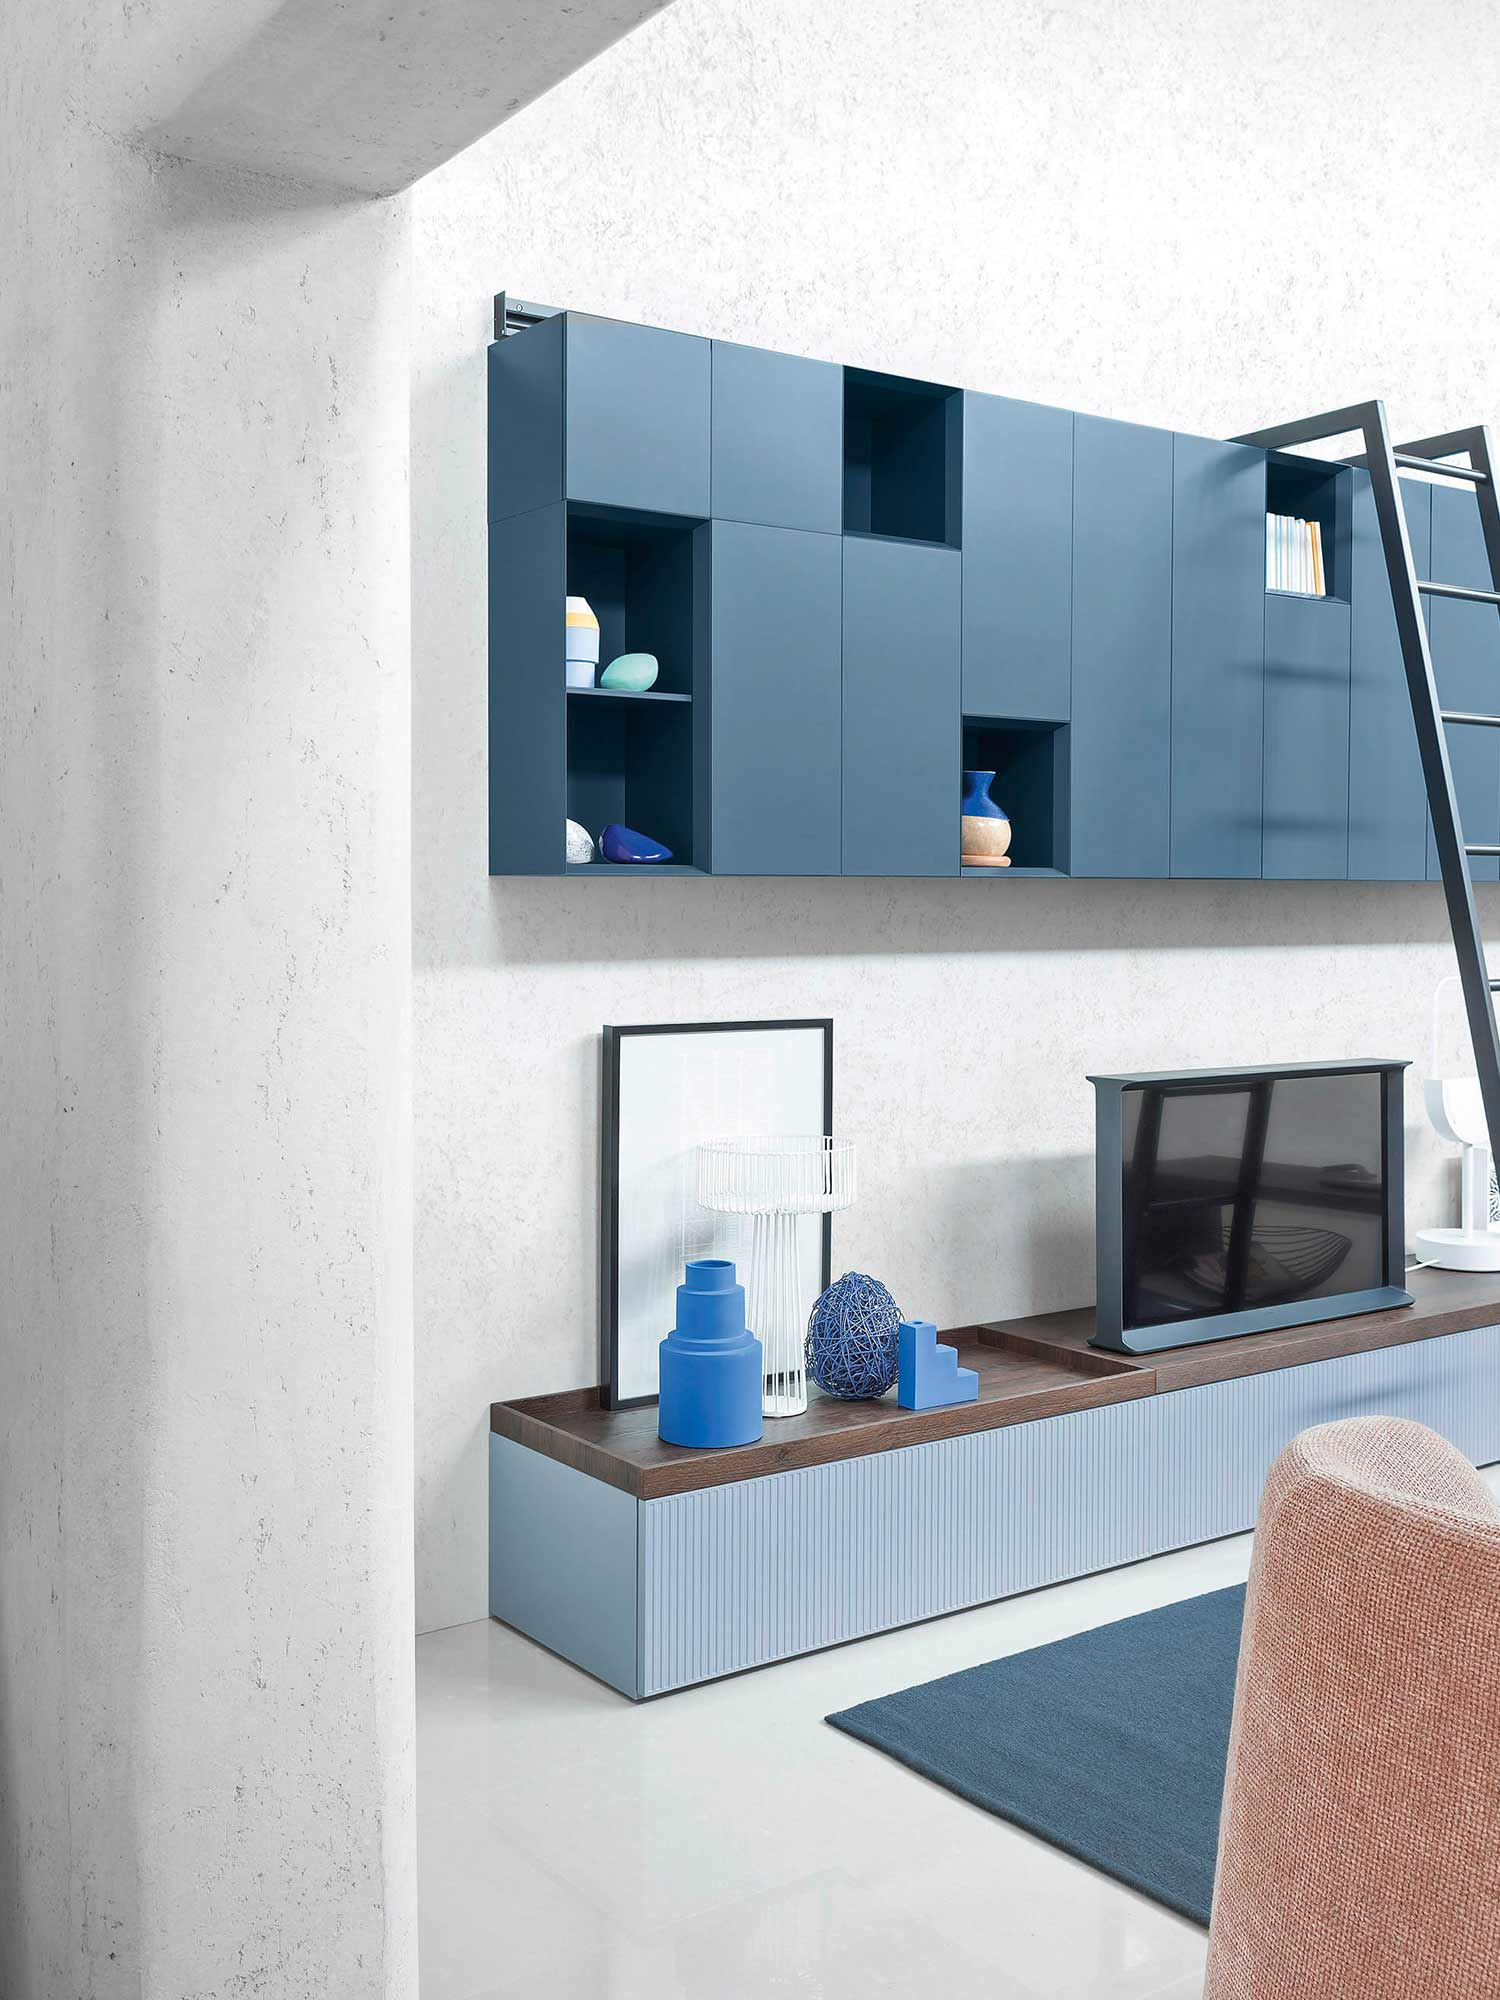 Storage solutions for contemporary living, designed by Hubble